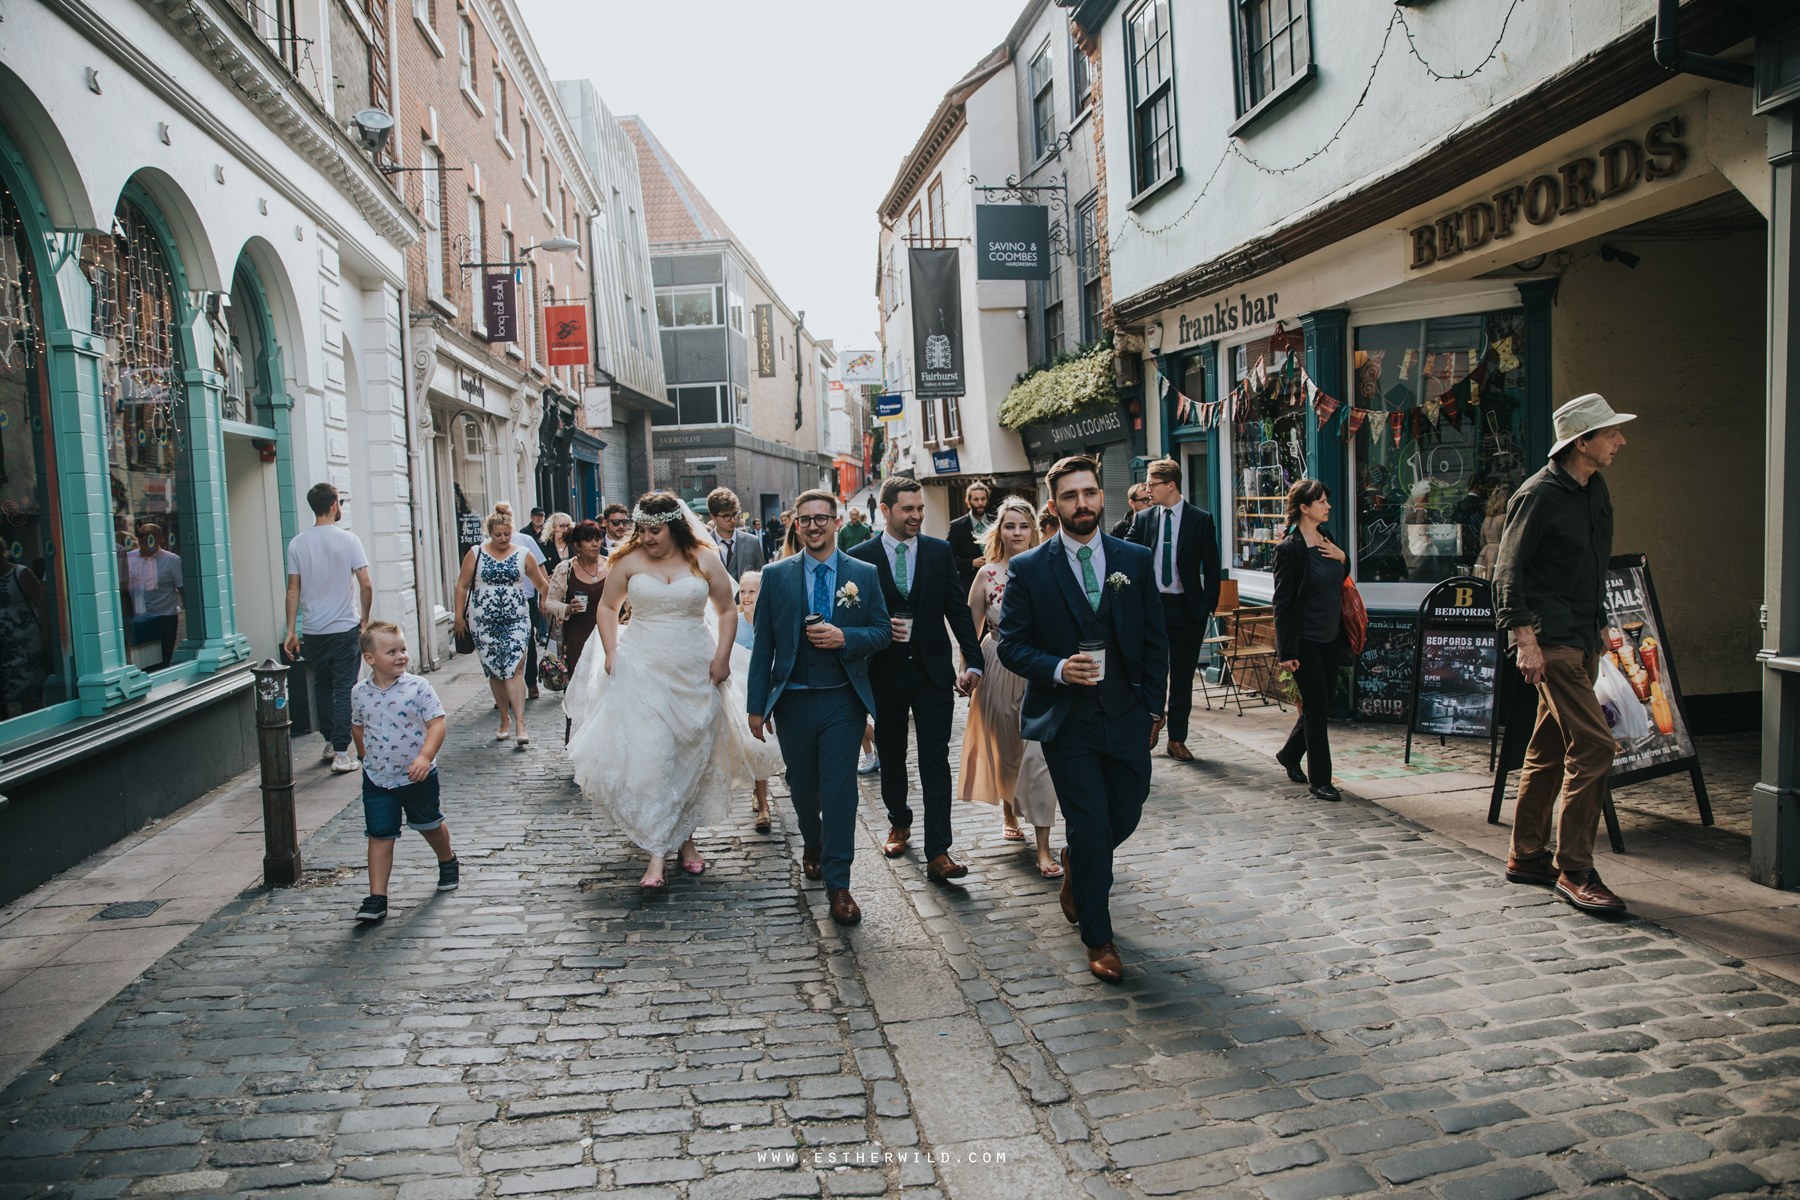 Norwich_Castle_Arcade_Grosvenor_Chip_Birdcage_Cathedral_Cloisters_Refectory_Wedding_Photography_Esther_Wild_Photographer_Norfolk_Kings_Lynn_3R8A1745.jpg